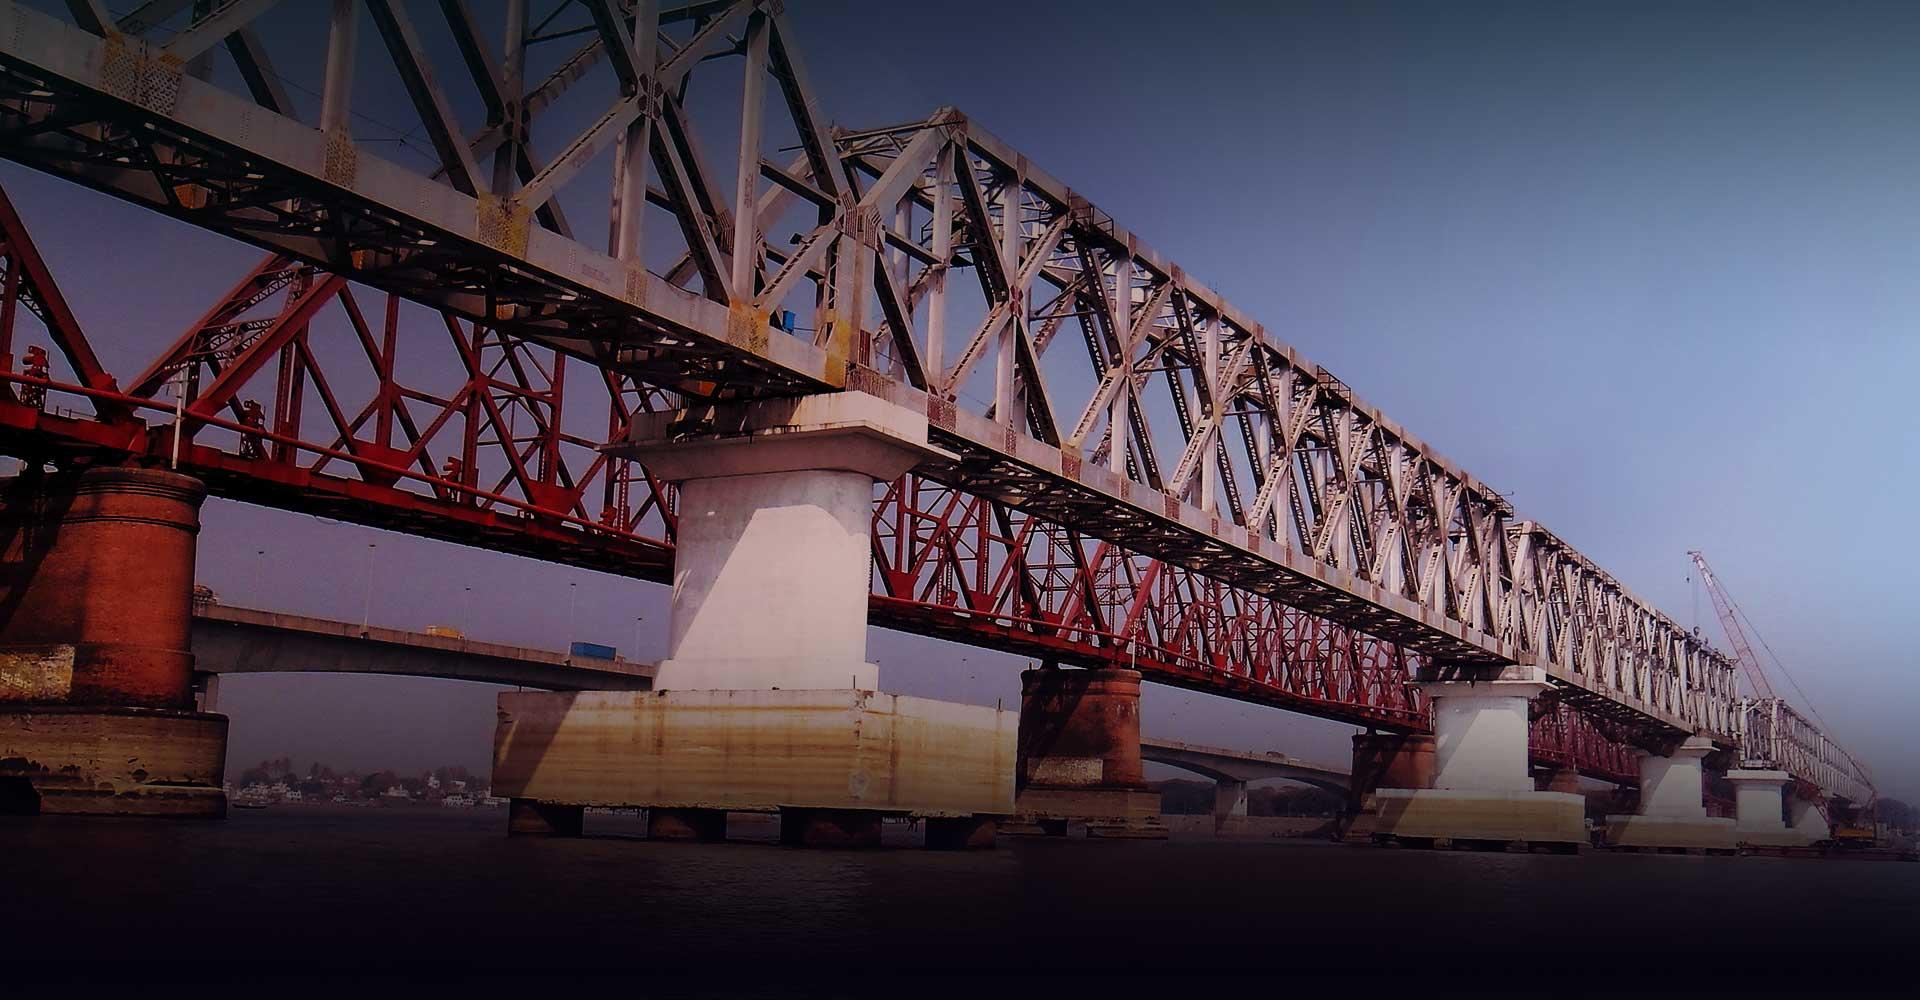 Bhairab Railway Bridge, <br/> Bangladesh